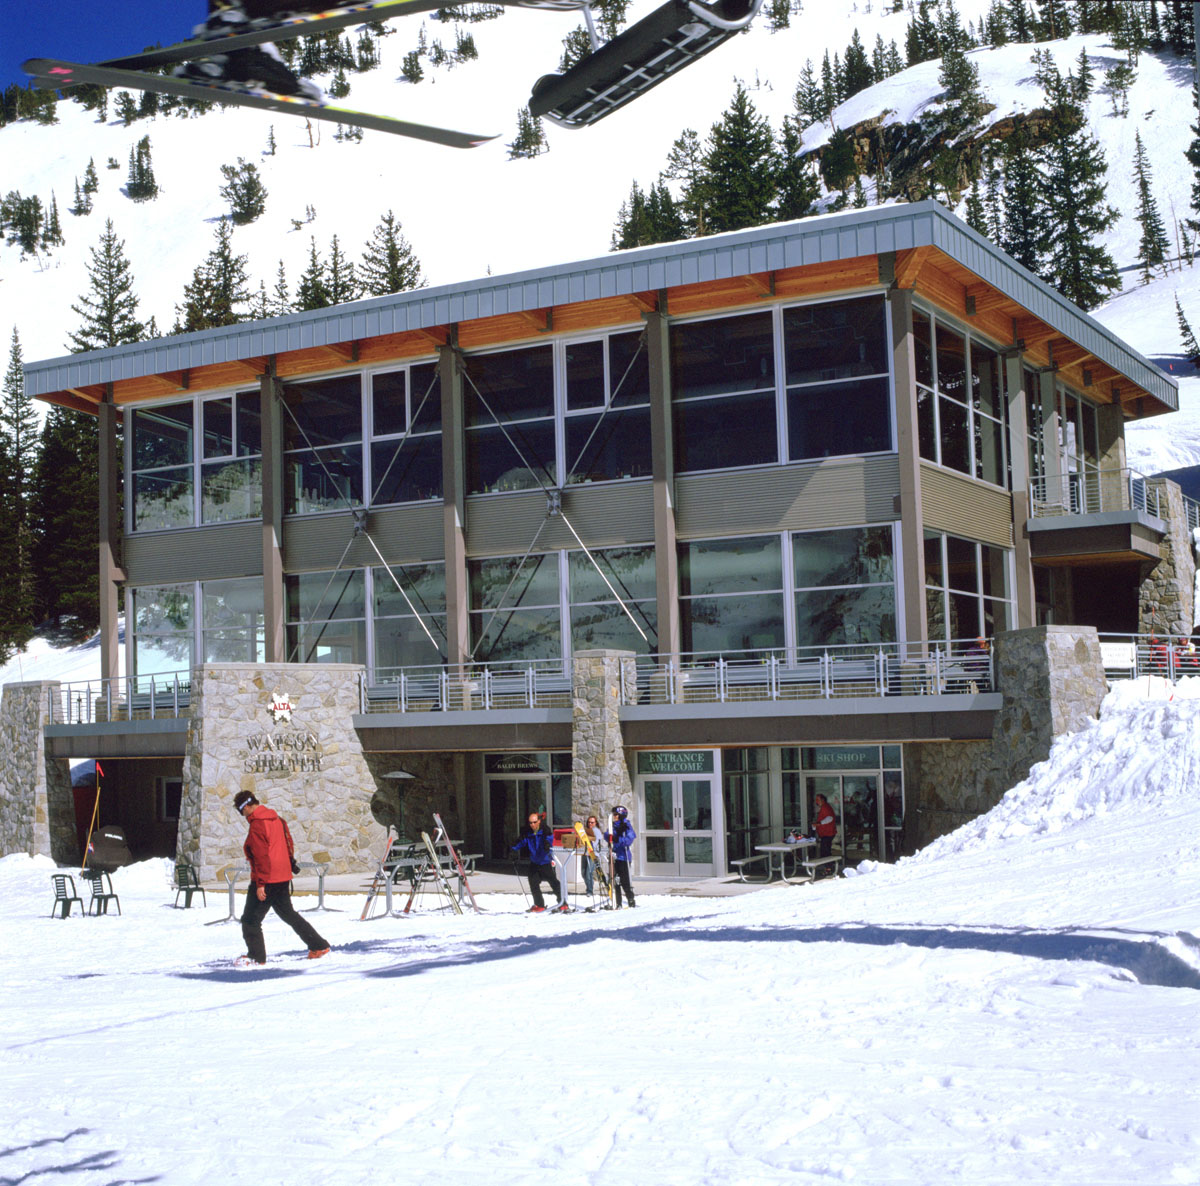 Skiers in brightly colored jackets walk and stand in front of the Watson Shelter at the Alta Ski Resort.